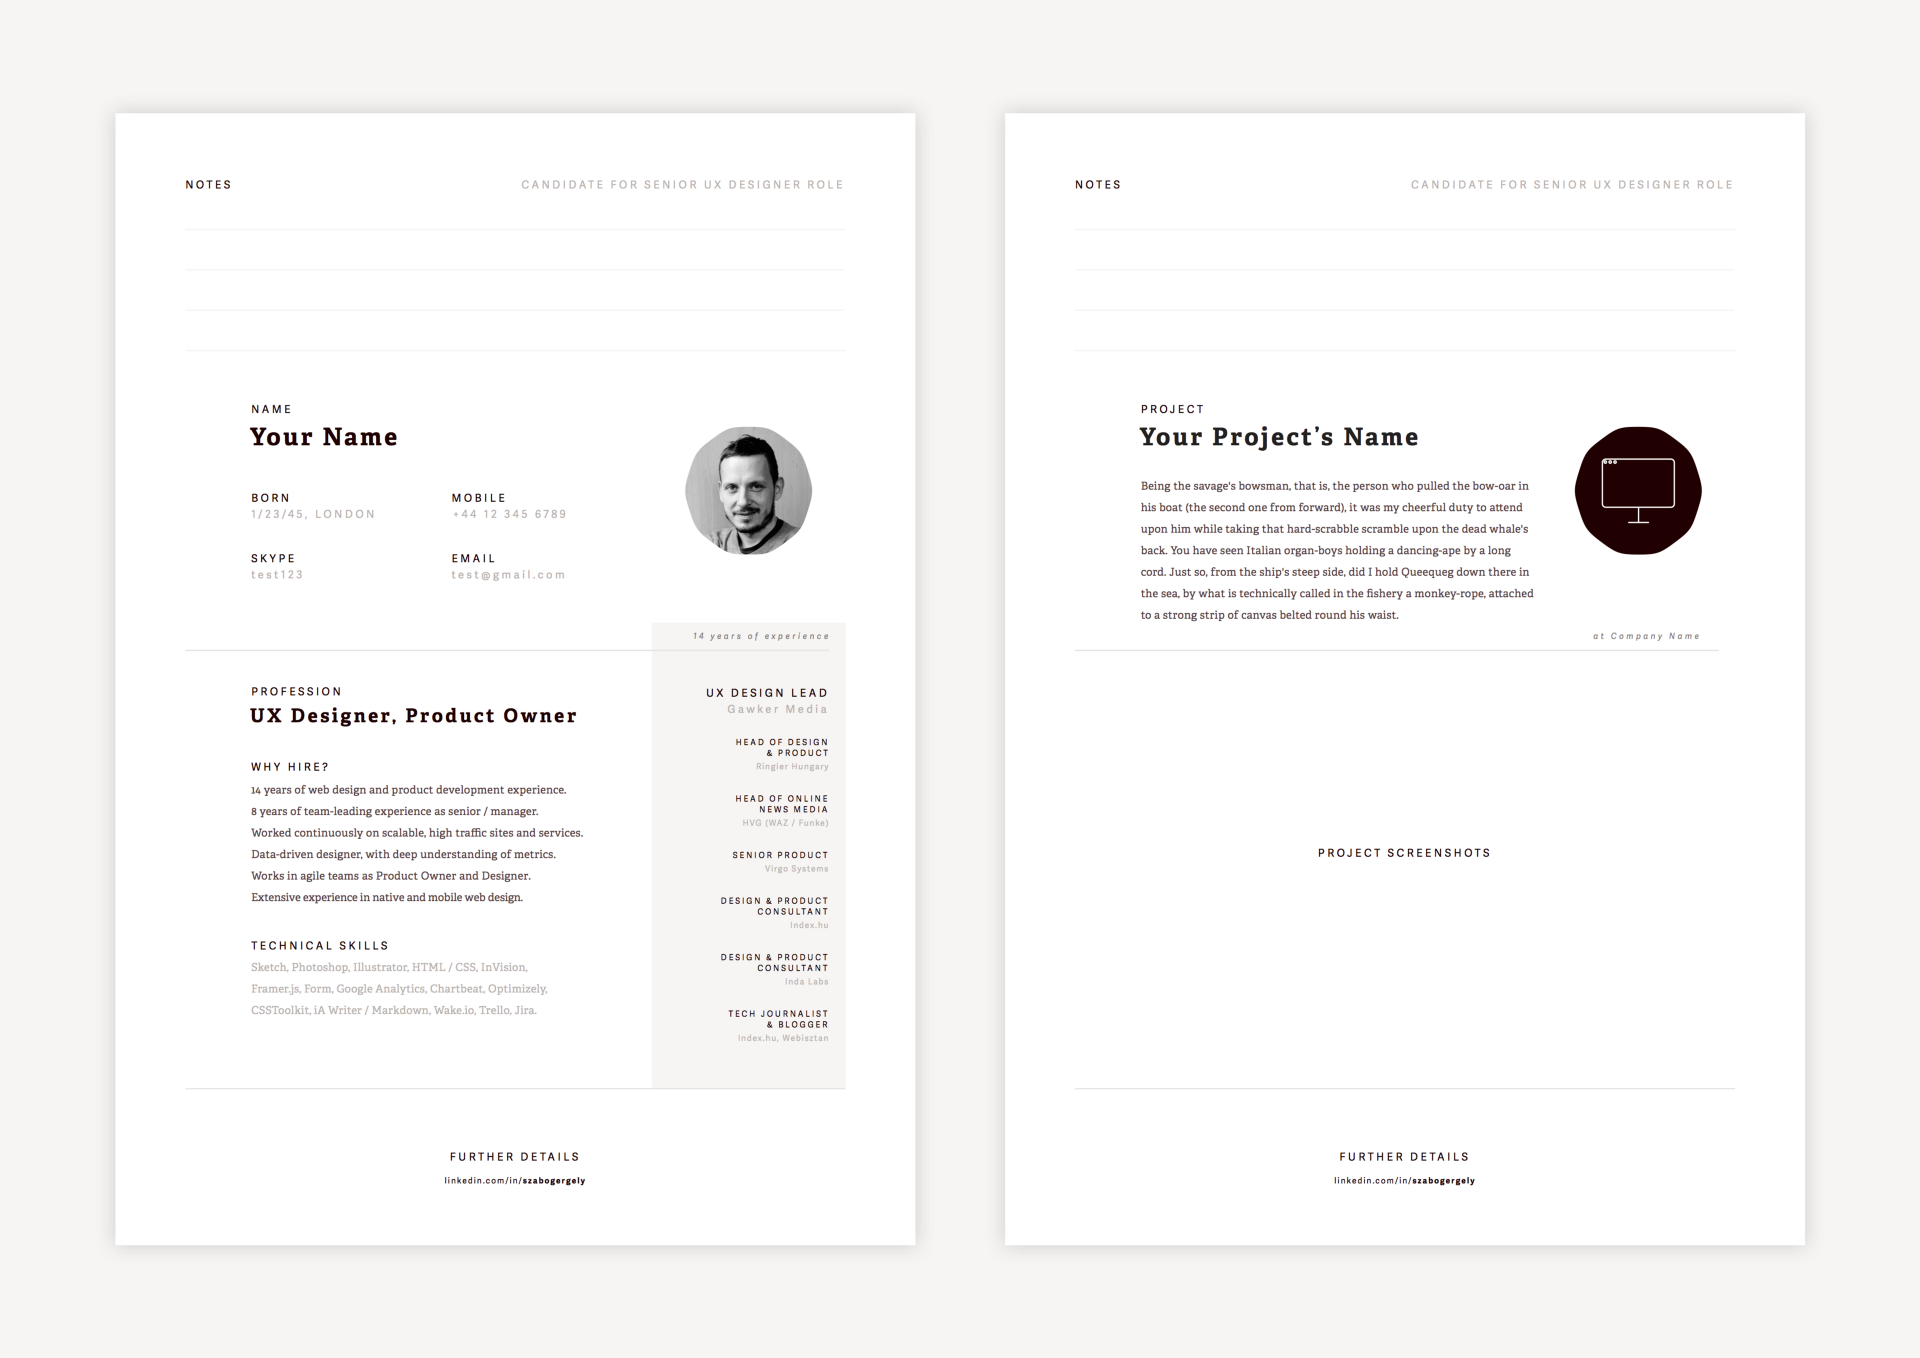 Creating Resume In Sketch U2013 Design + Sketch U2013 Medium  How To Make An Outstanding Resume